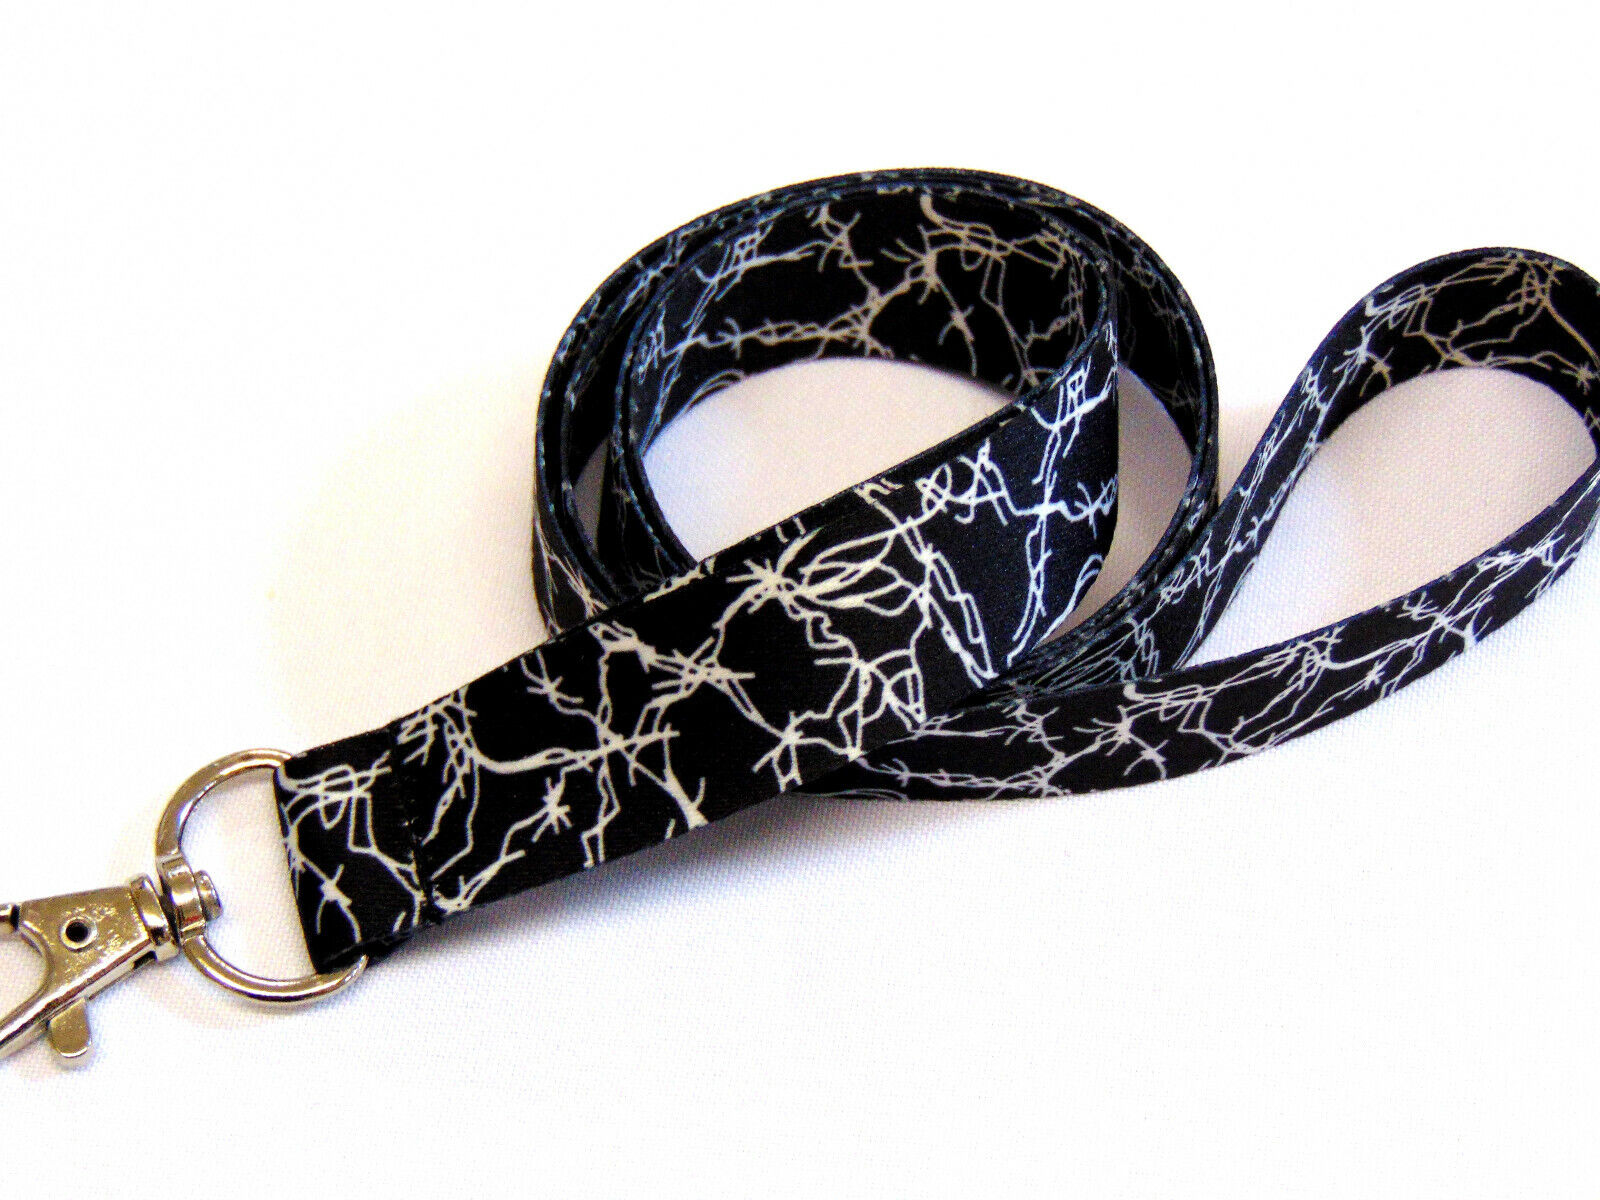 Barbed Wire printed neck strap lanyard for ID, keys etc. 15mm. Made in the UK